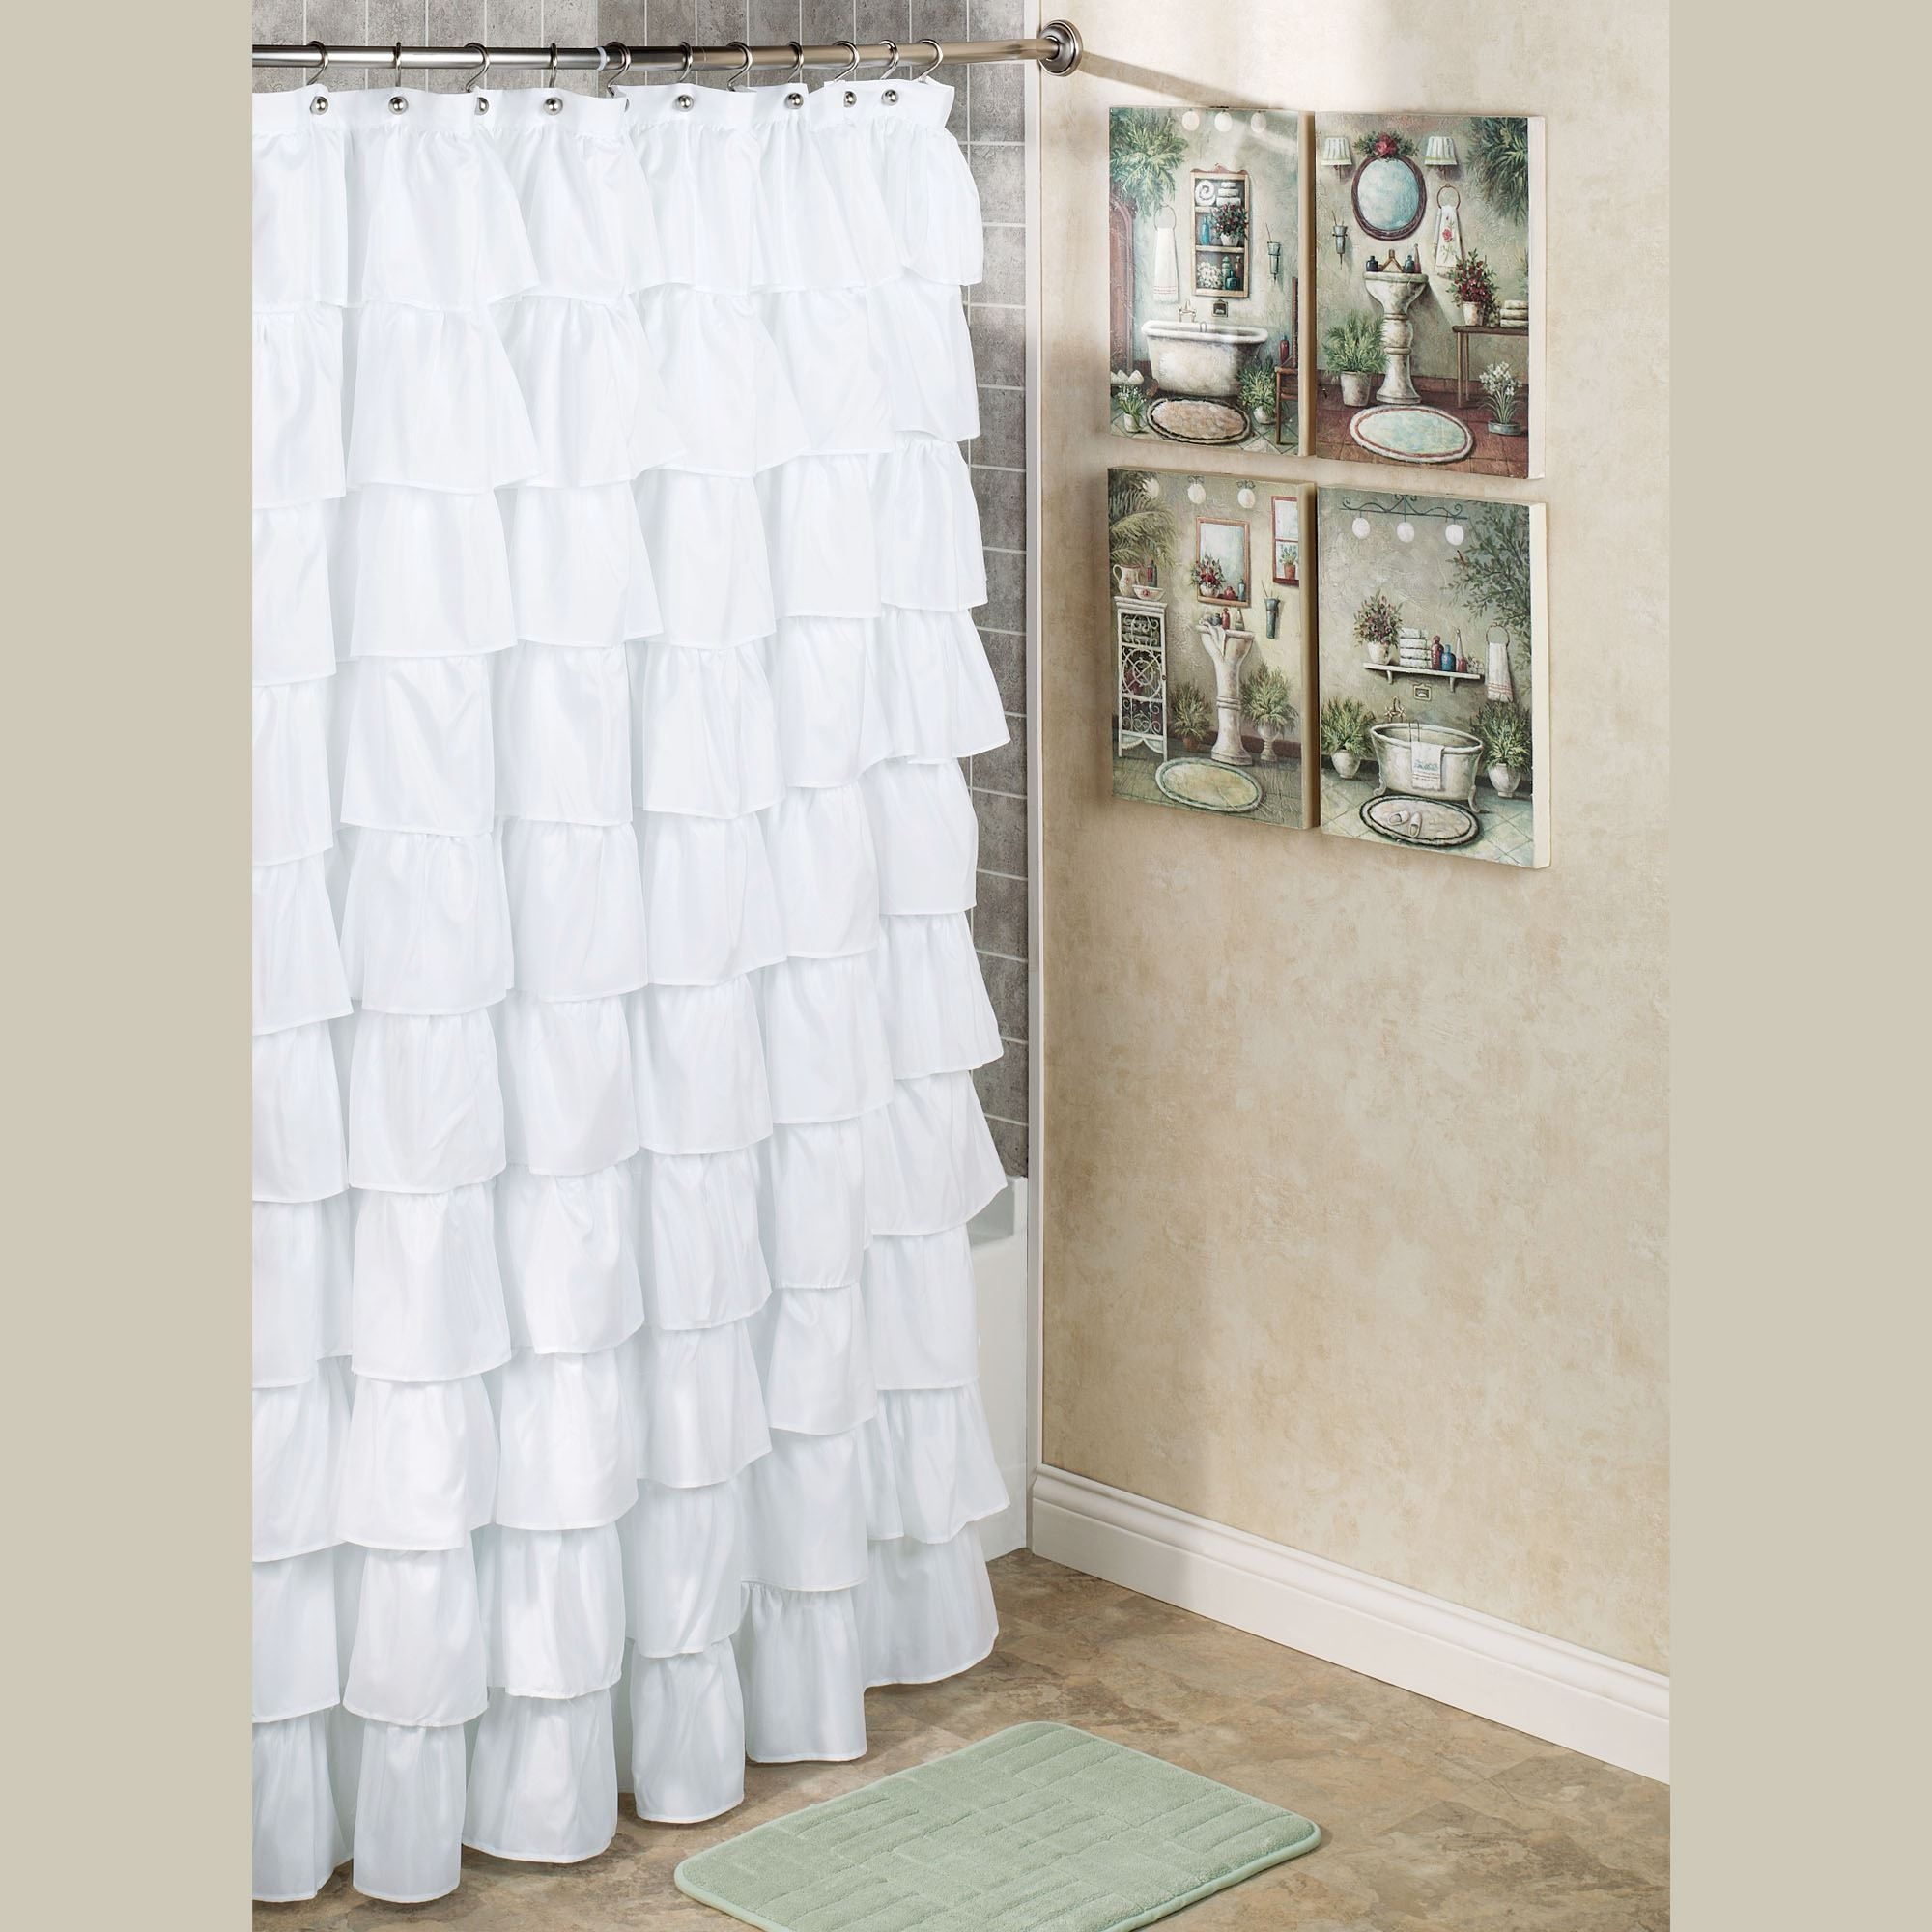 Croscill Spa Leaf Shower Curtain Hooks Shower Curtain with regard to  dimensions 2000 X 2000